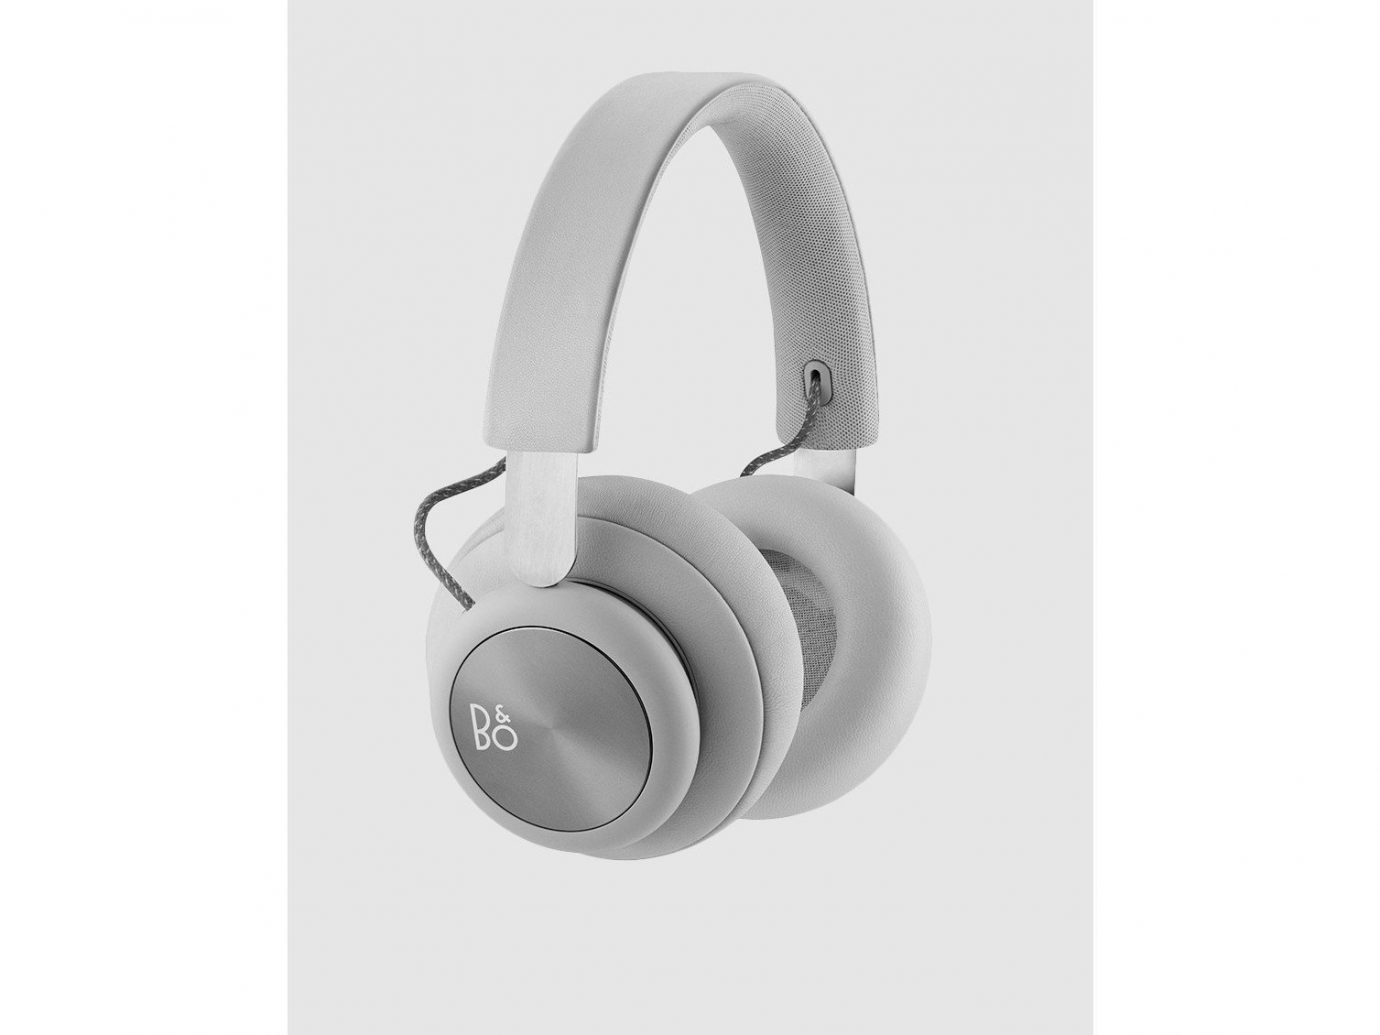 Gift Guides Style + Design Travel Shop earphone electronics headphones technology audio equipment audio product headset product design electronic device white